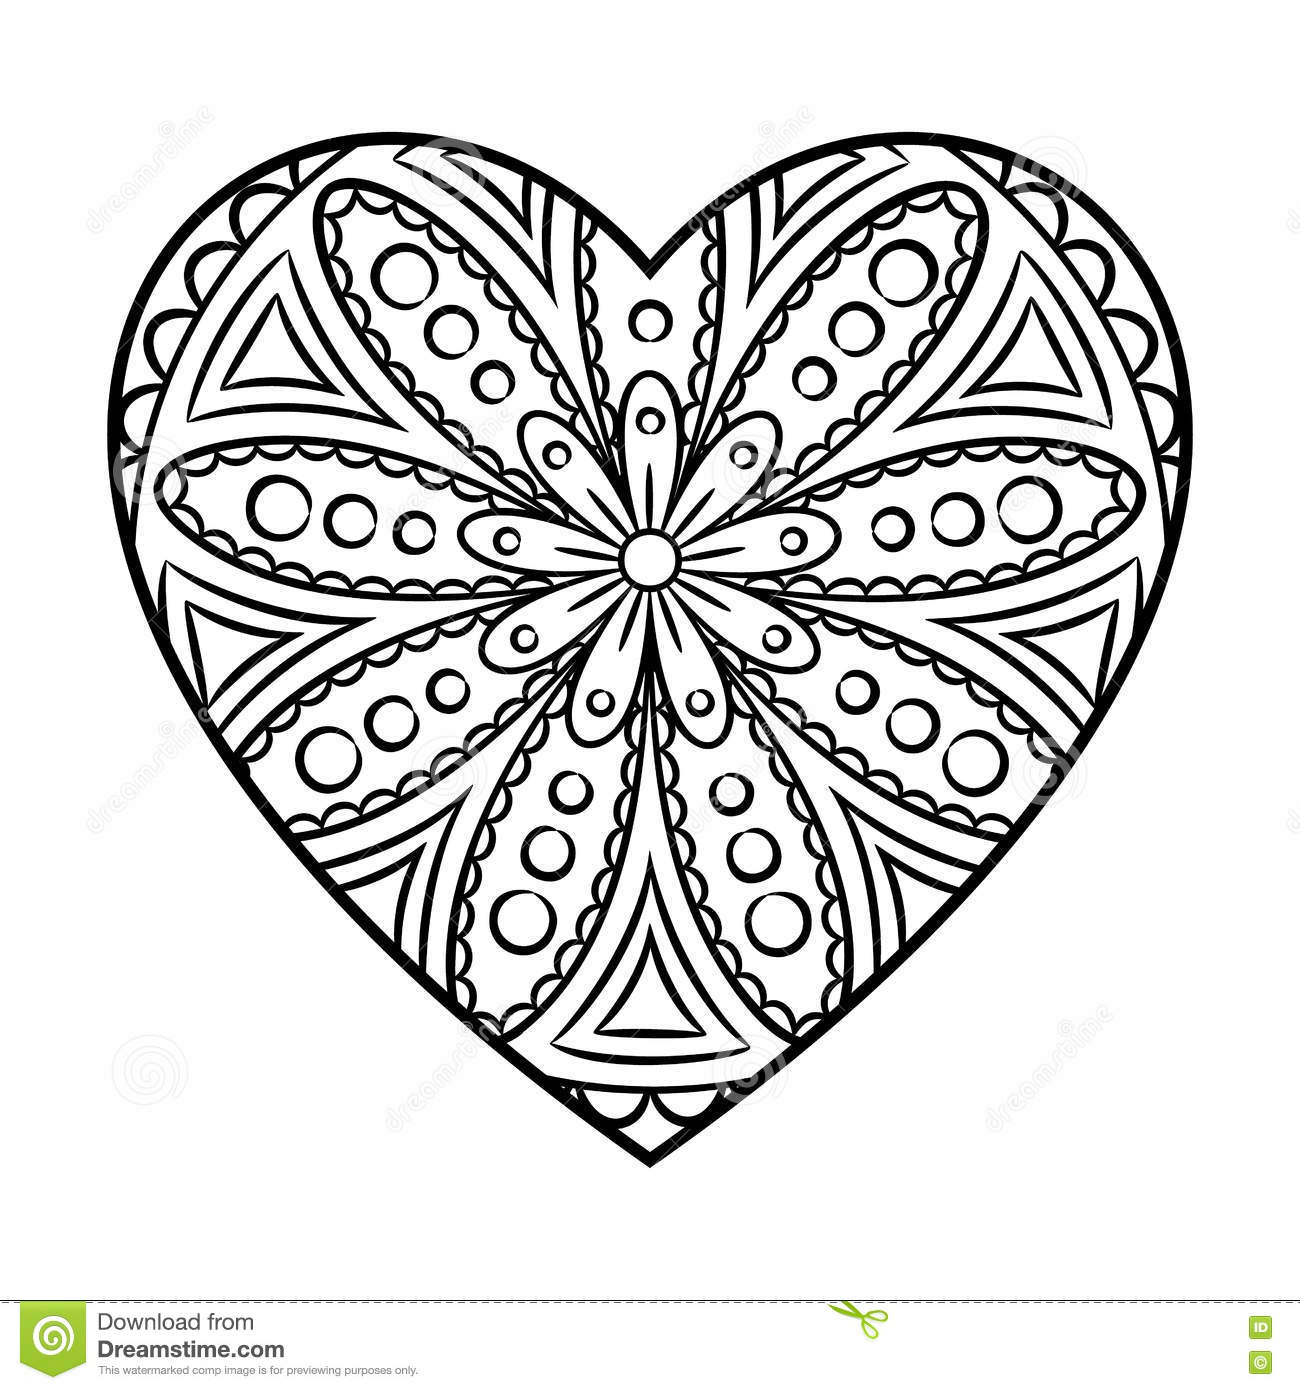 Doodle Heart Mandala Stock Vector Illustration Of